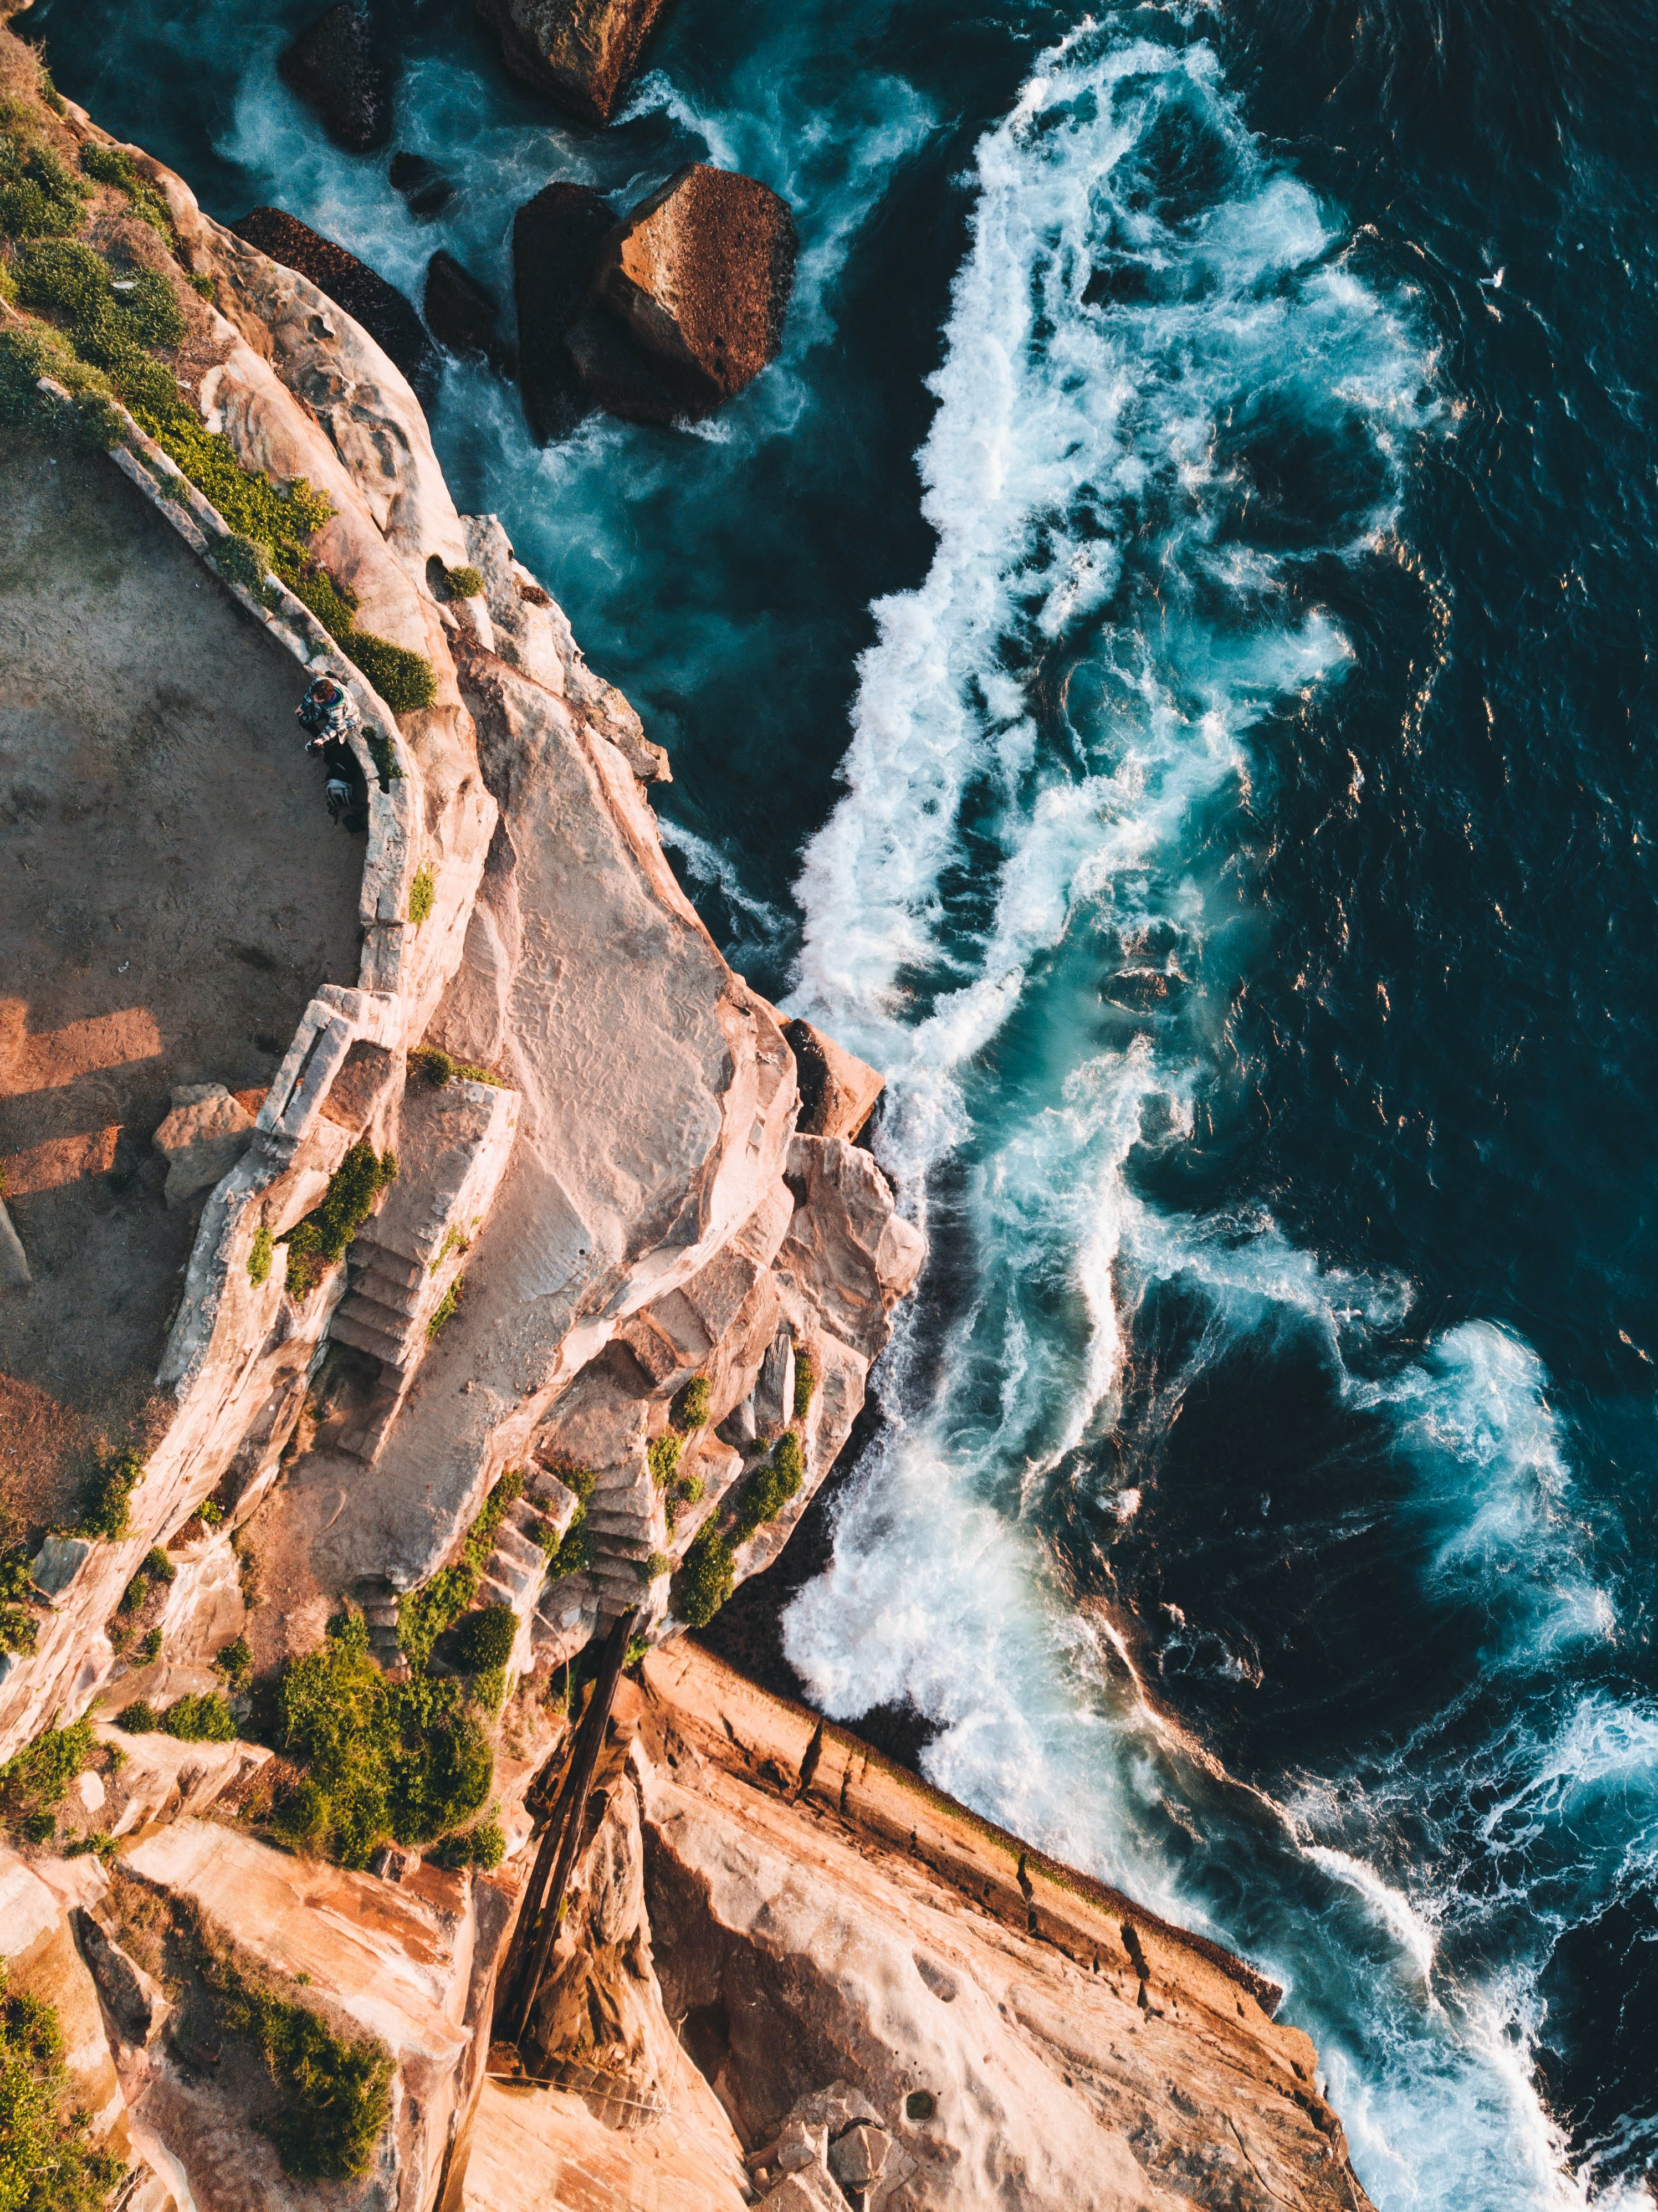 bird's eye view photography of cliff and sea waves